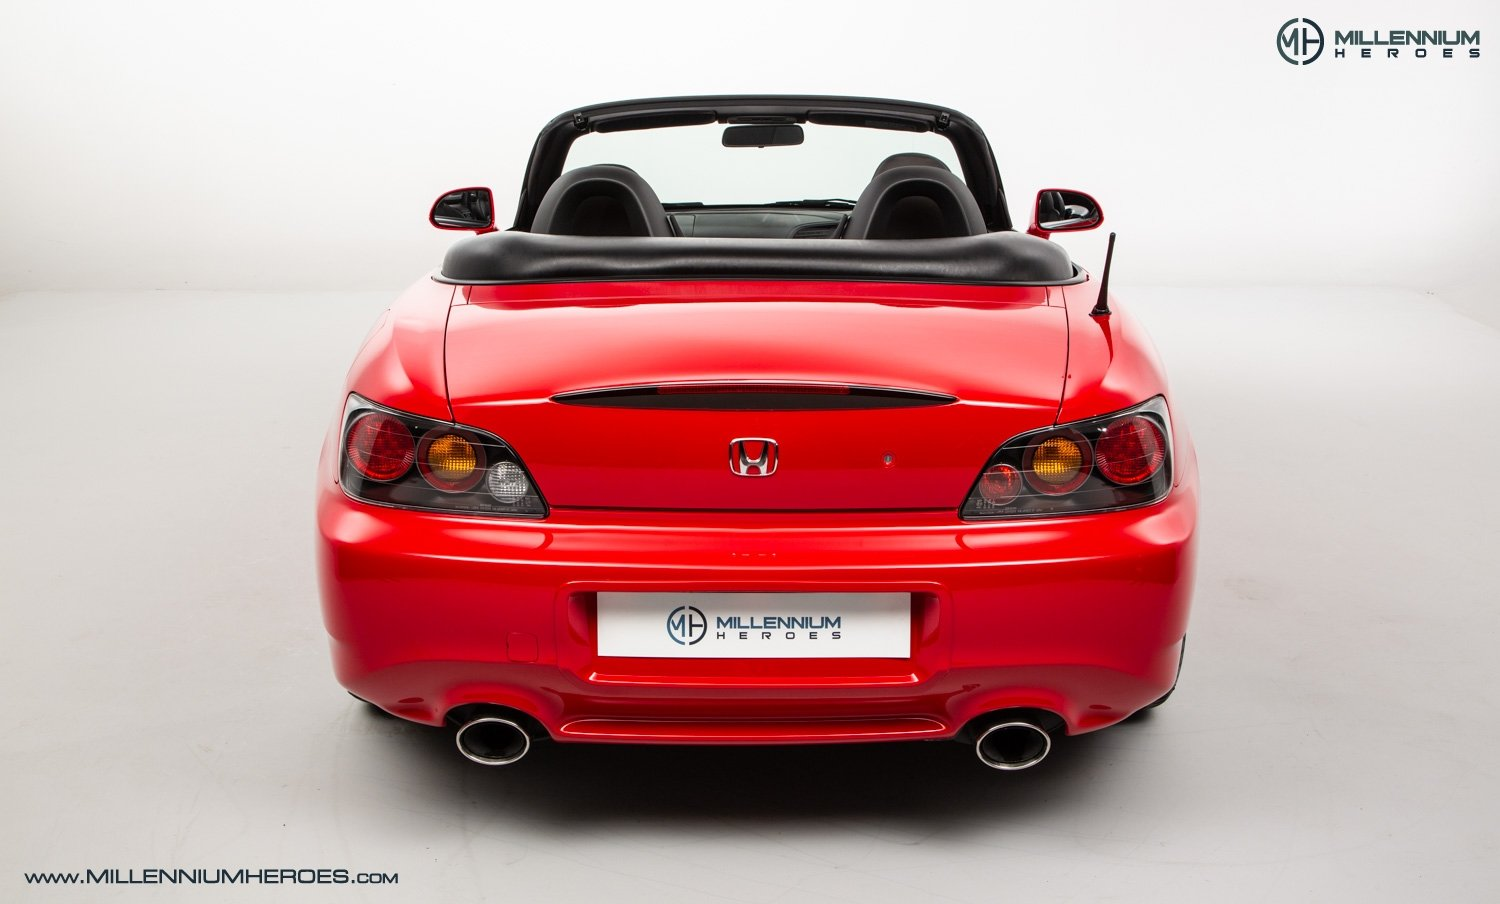 2007 HONDA S2000  For Sale (picture 8 of 21)